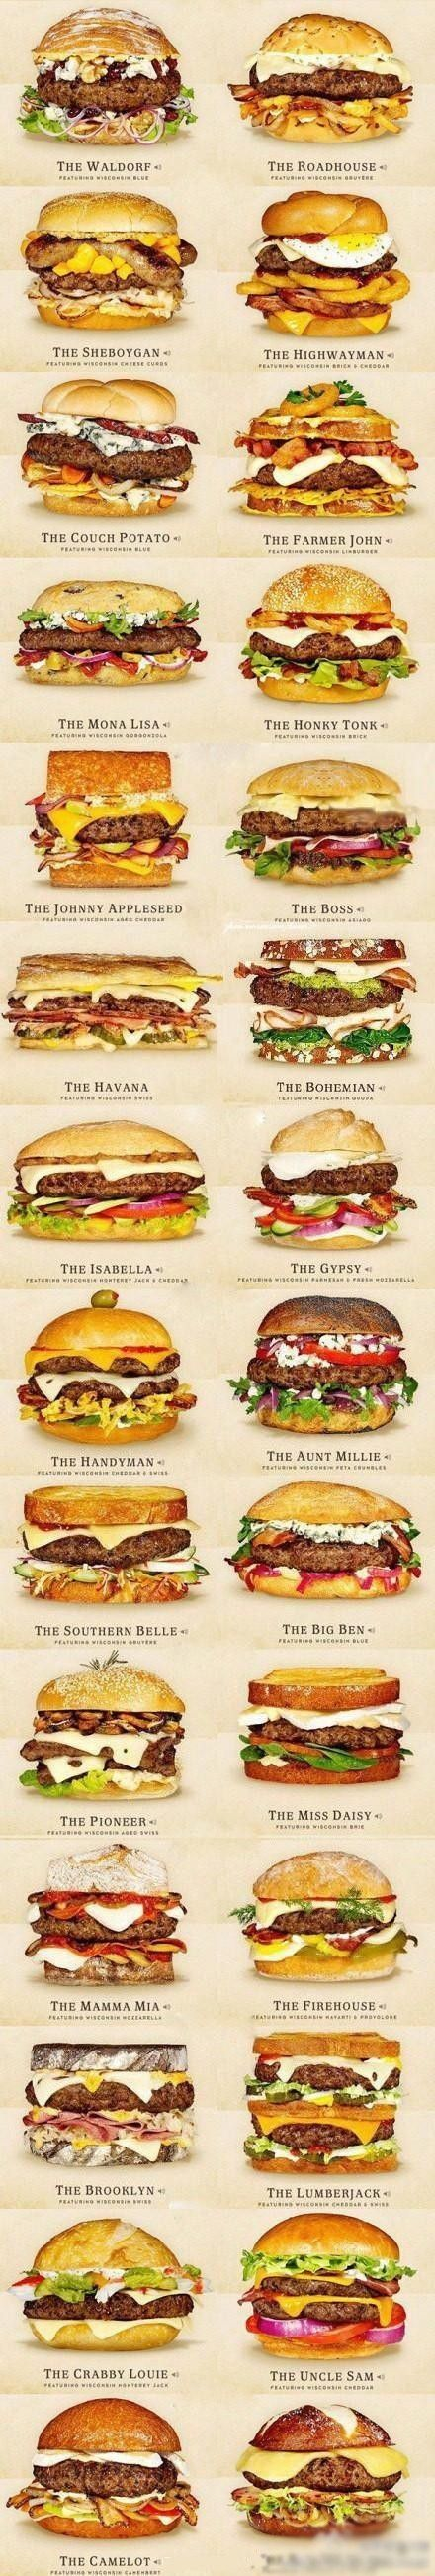 http://www.cheeseandburger.com/ Click the link for 30 amazing sounding cheeseburgers!